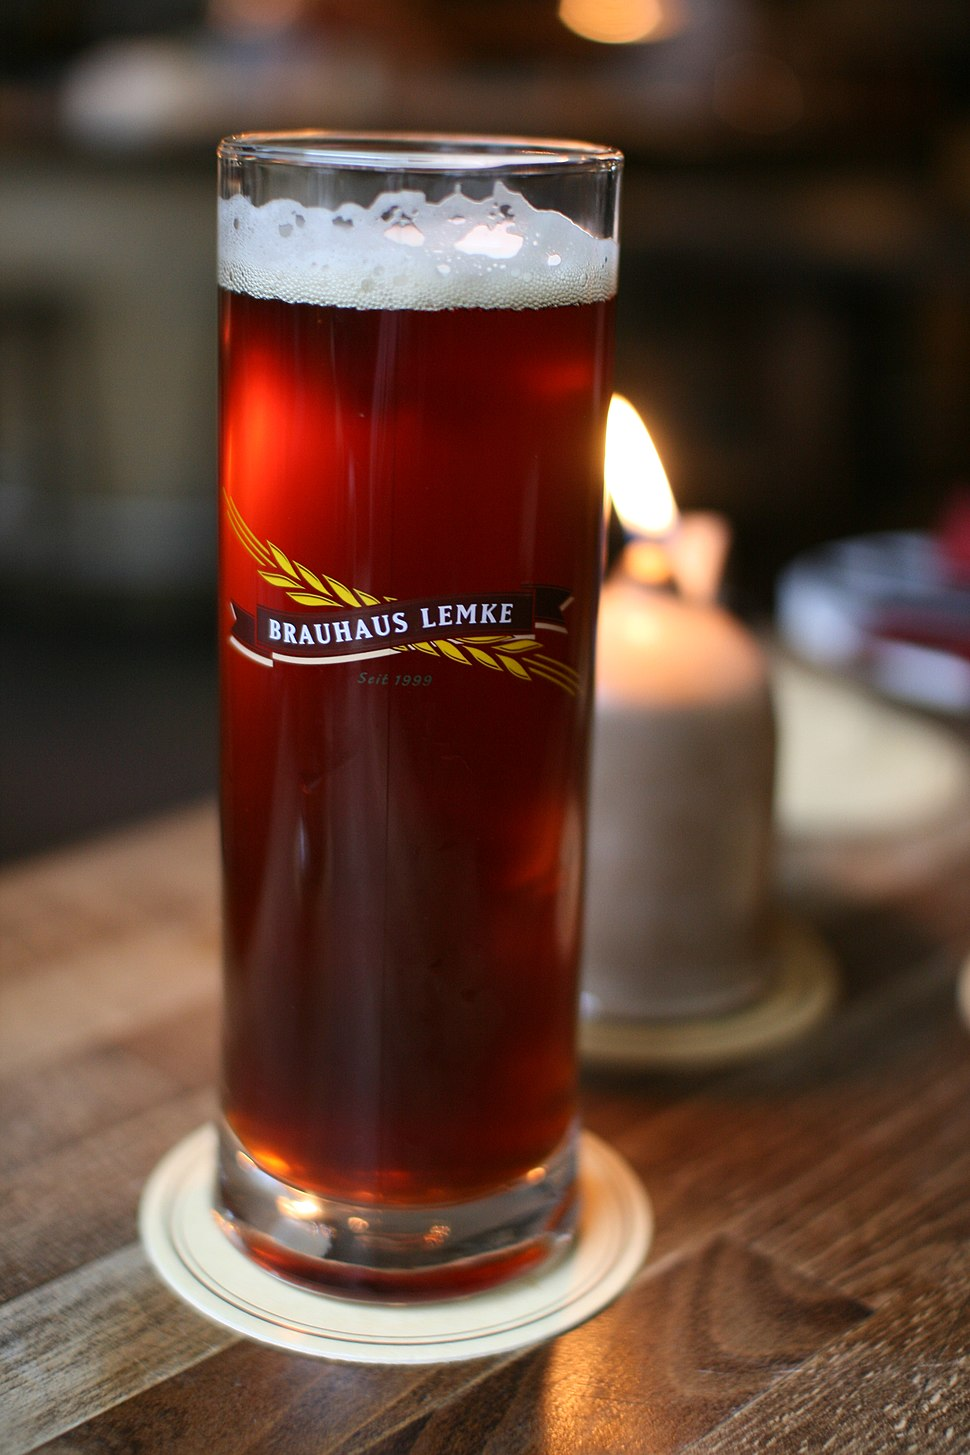 Lemke dunkel beer in glass